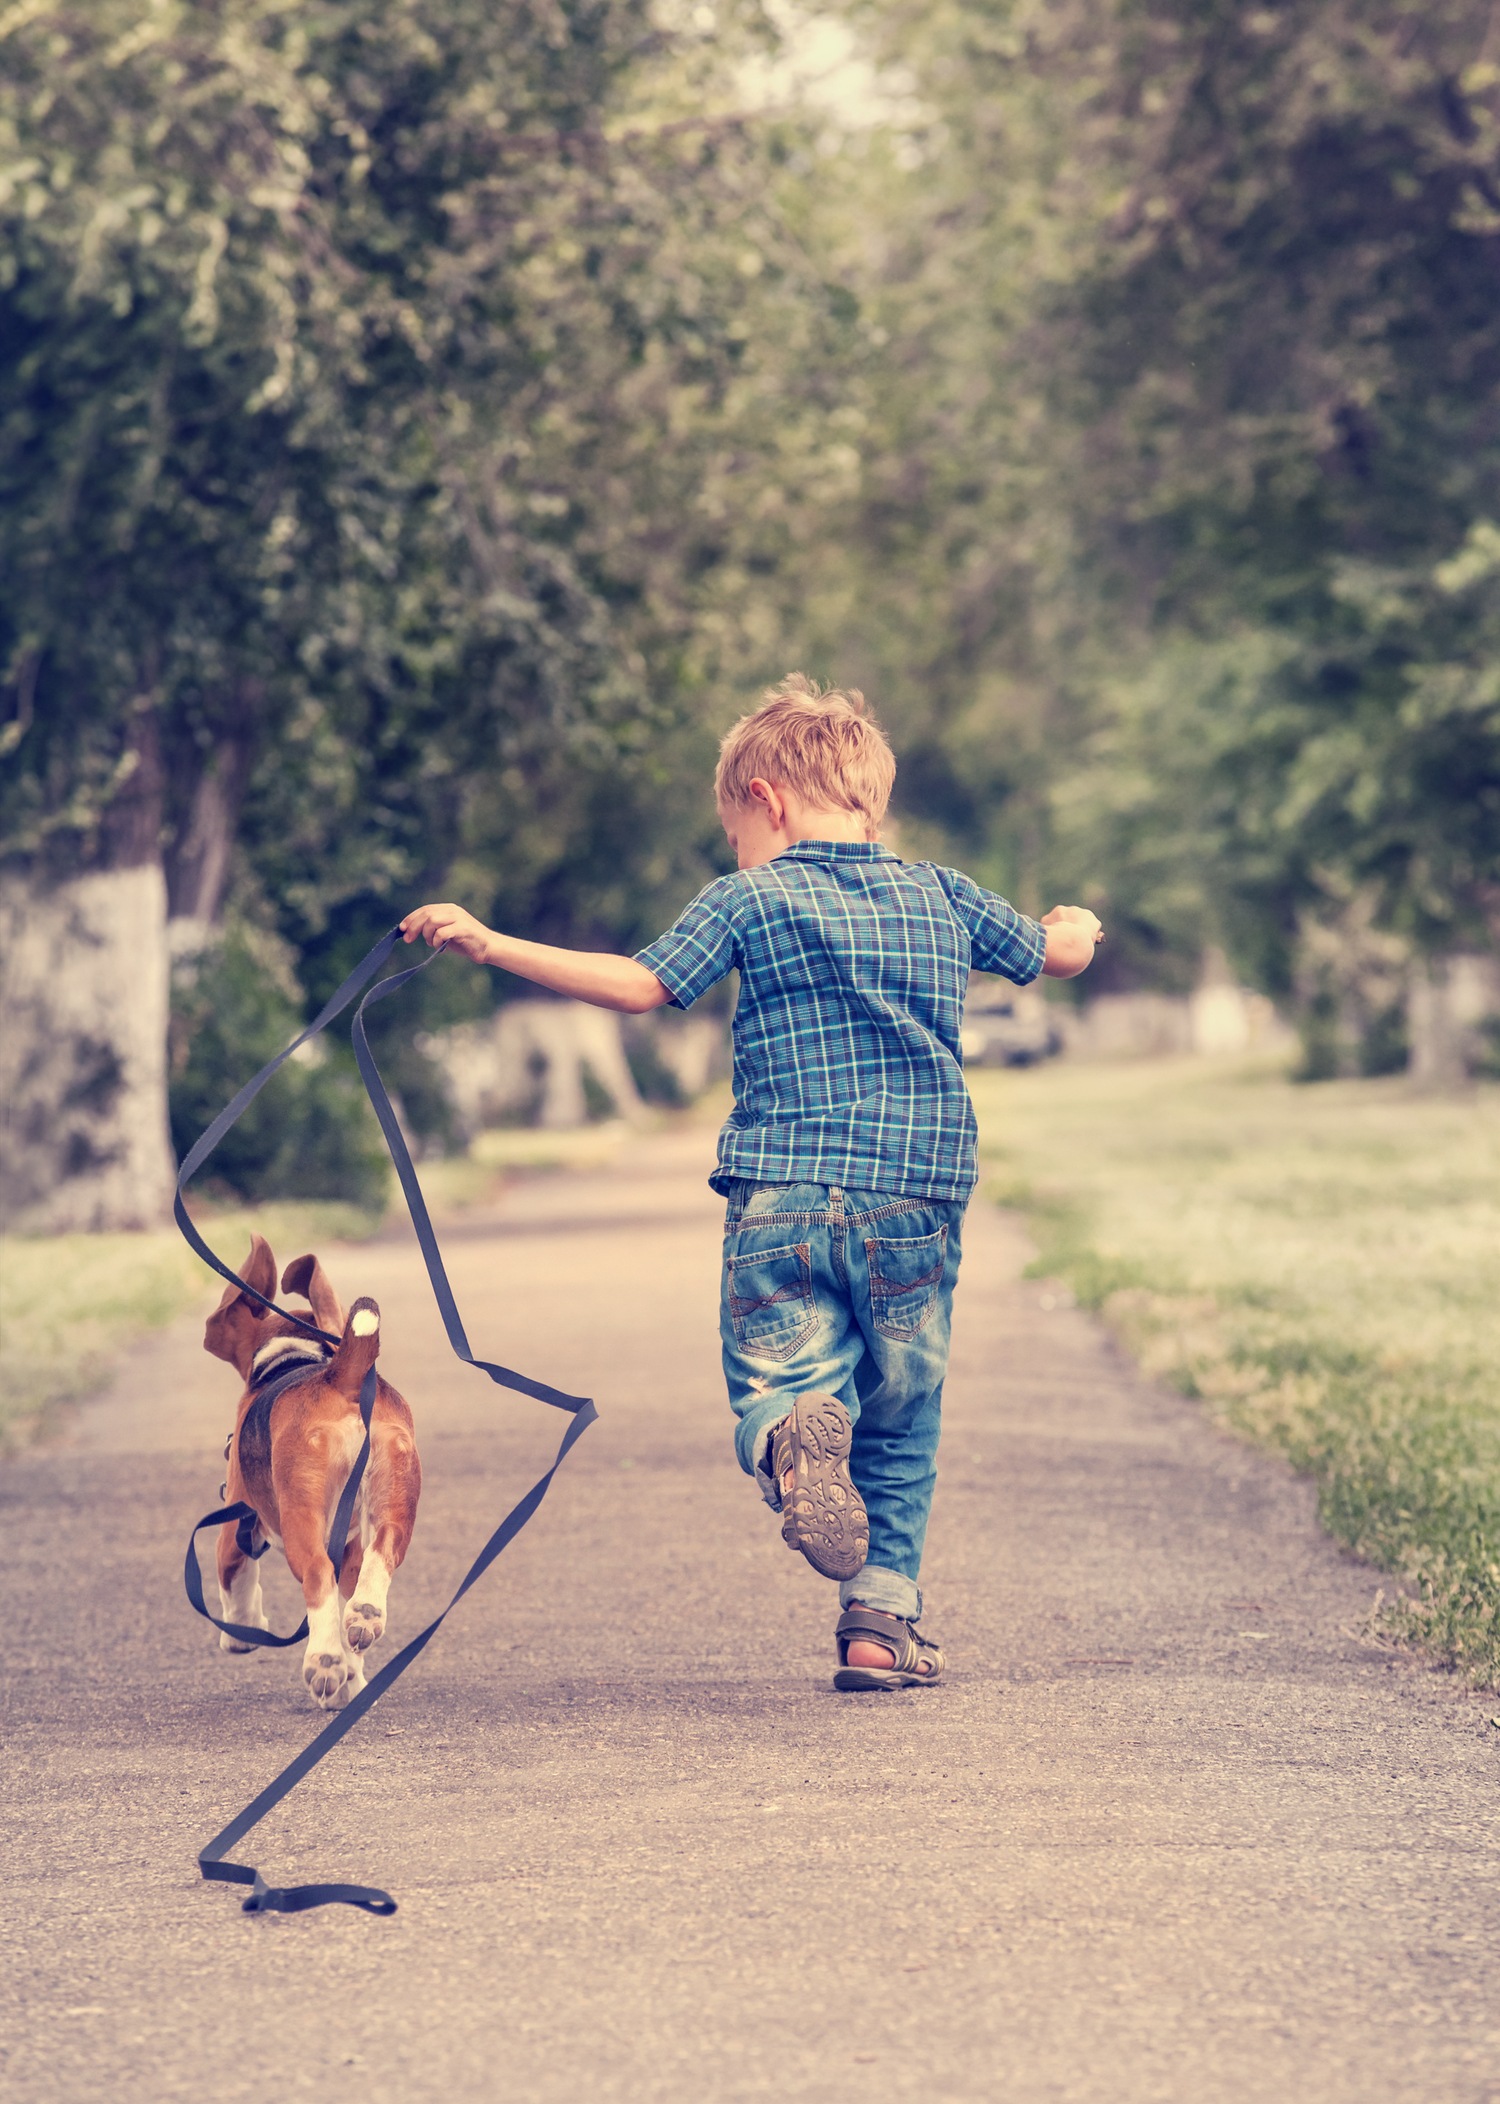 STRANGER'S RESPONSE TO TODDLER'S LETTER TO LATE DOG WILL MAKE YOUR TAIL WAG